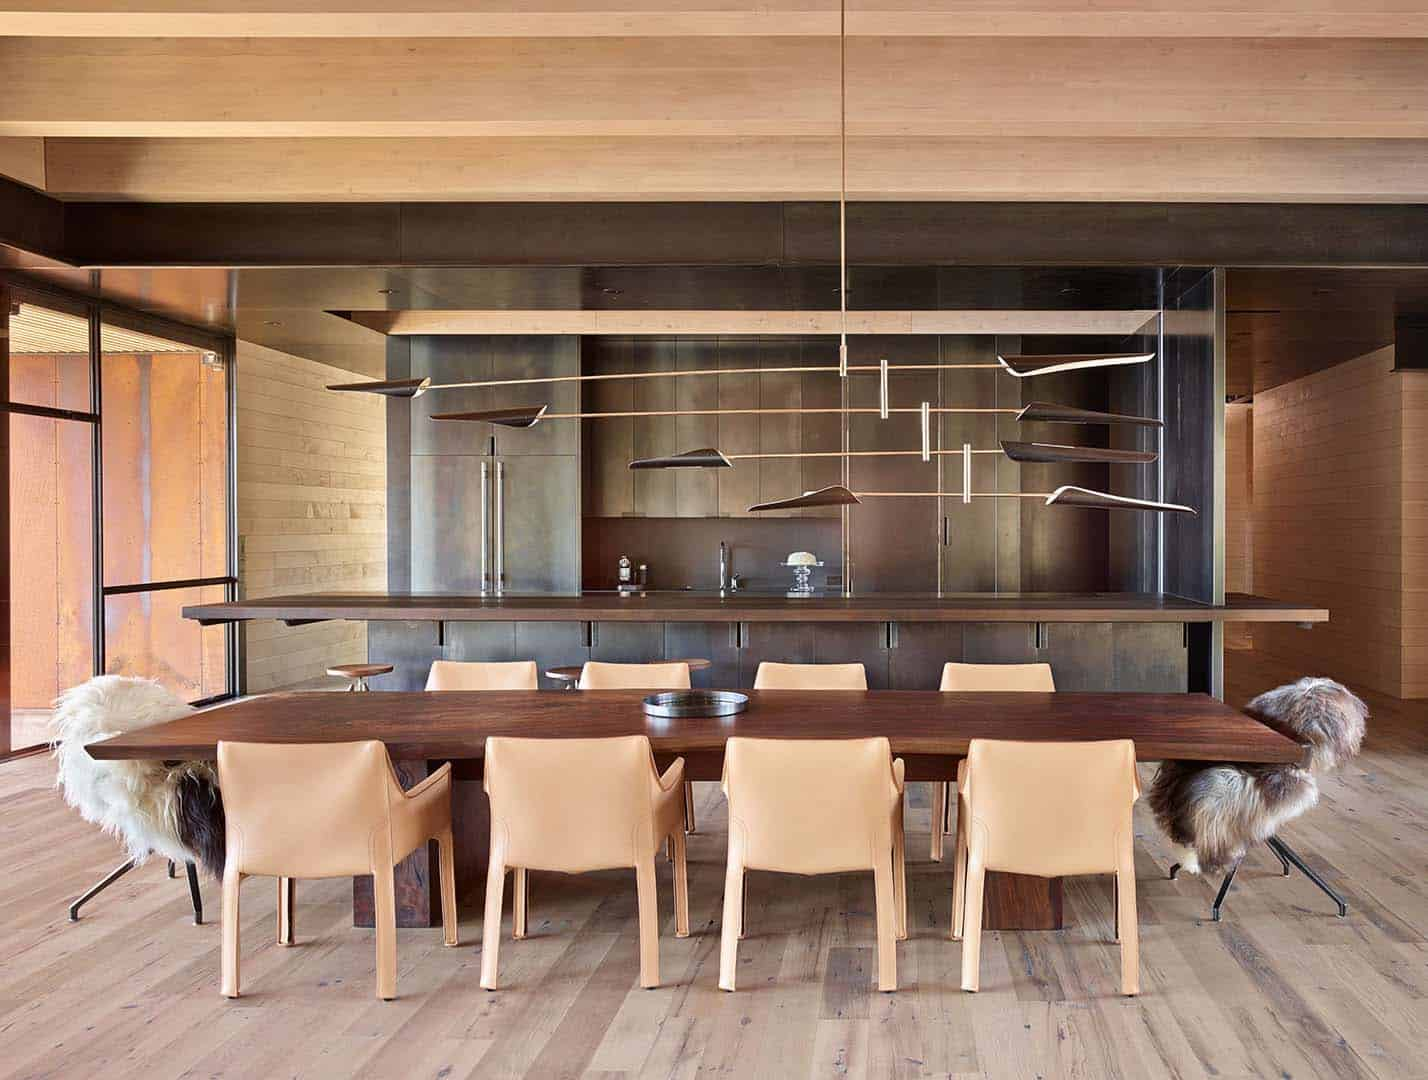 Mountain Ski Retreat-Olson Kundig Architects-27-1 Kindesign